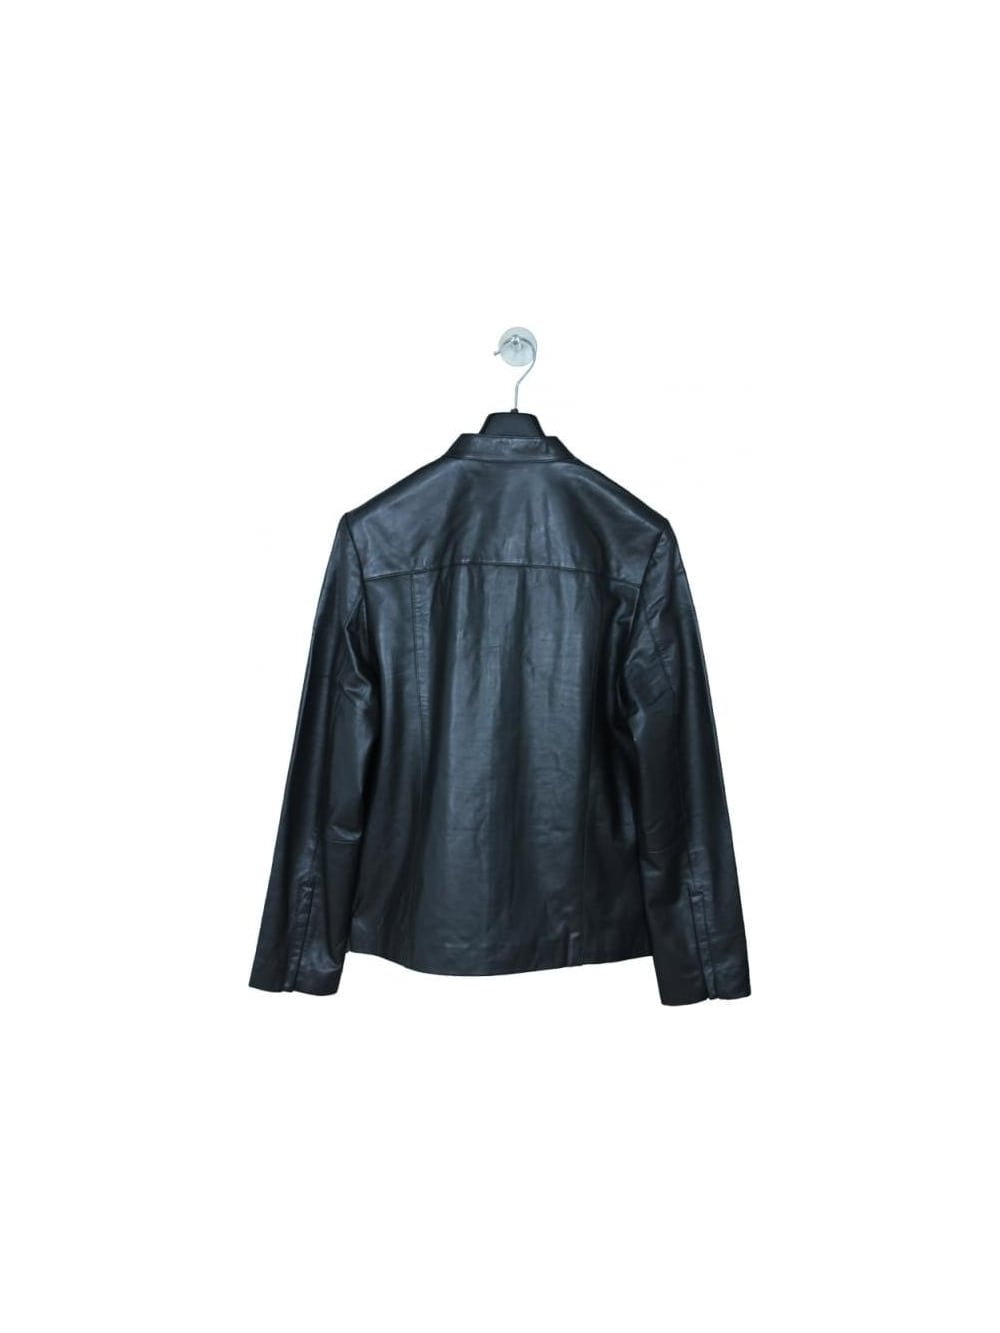 e05f1addcca5ac Ted Baker Pablo Leather Jacket - Black